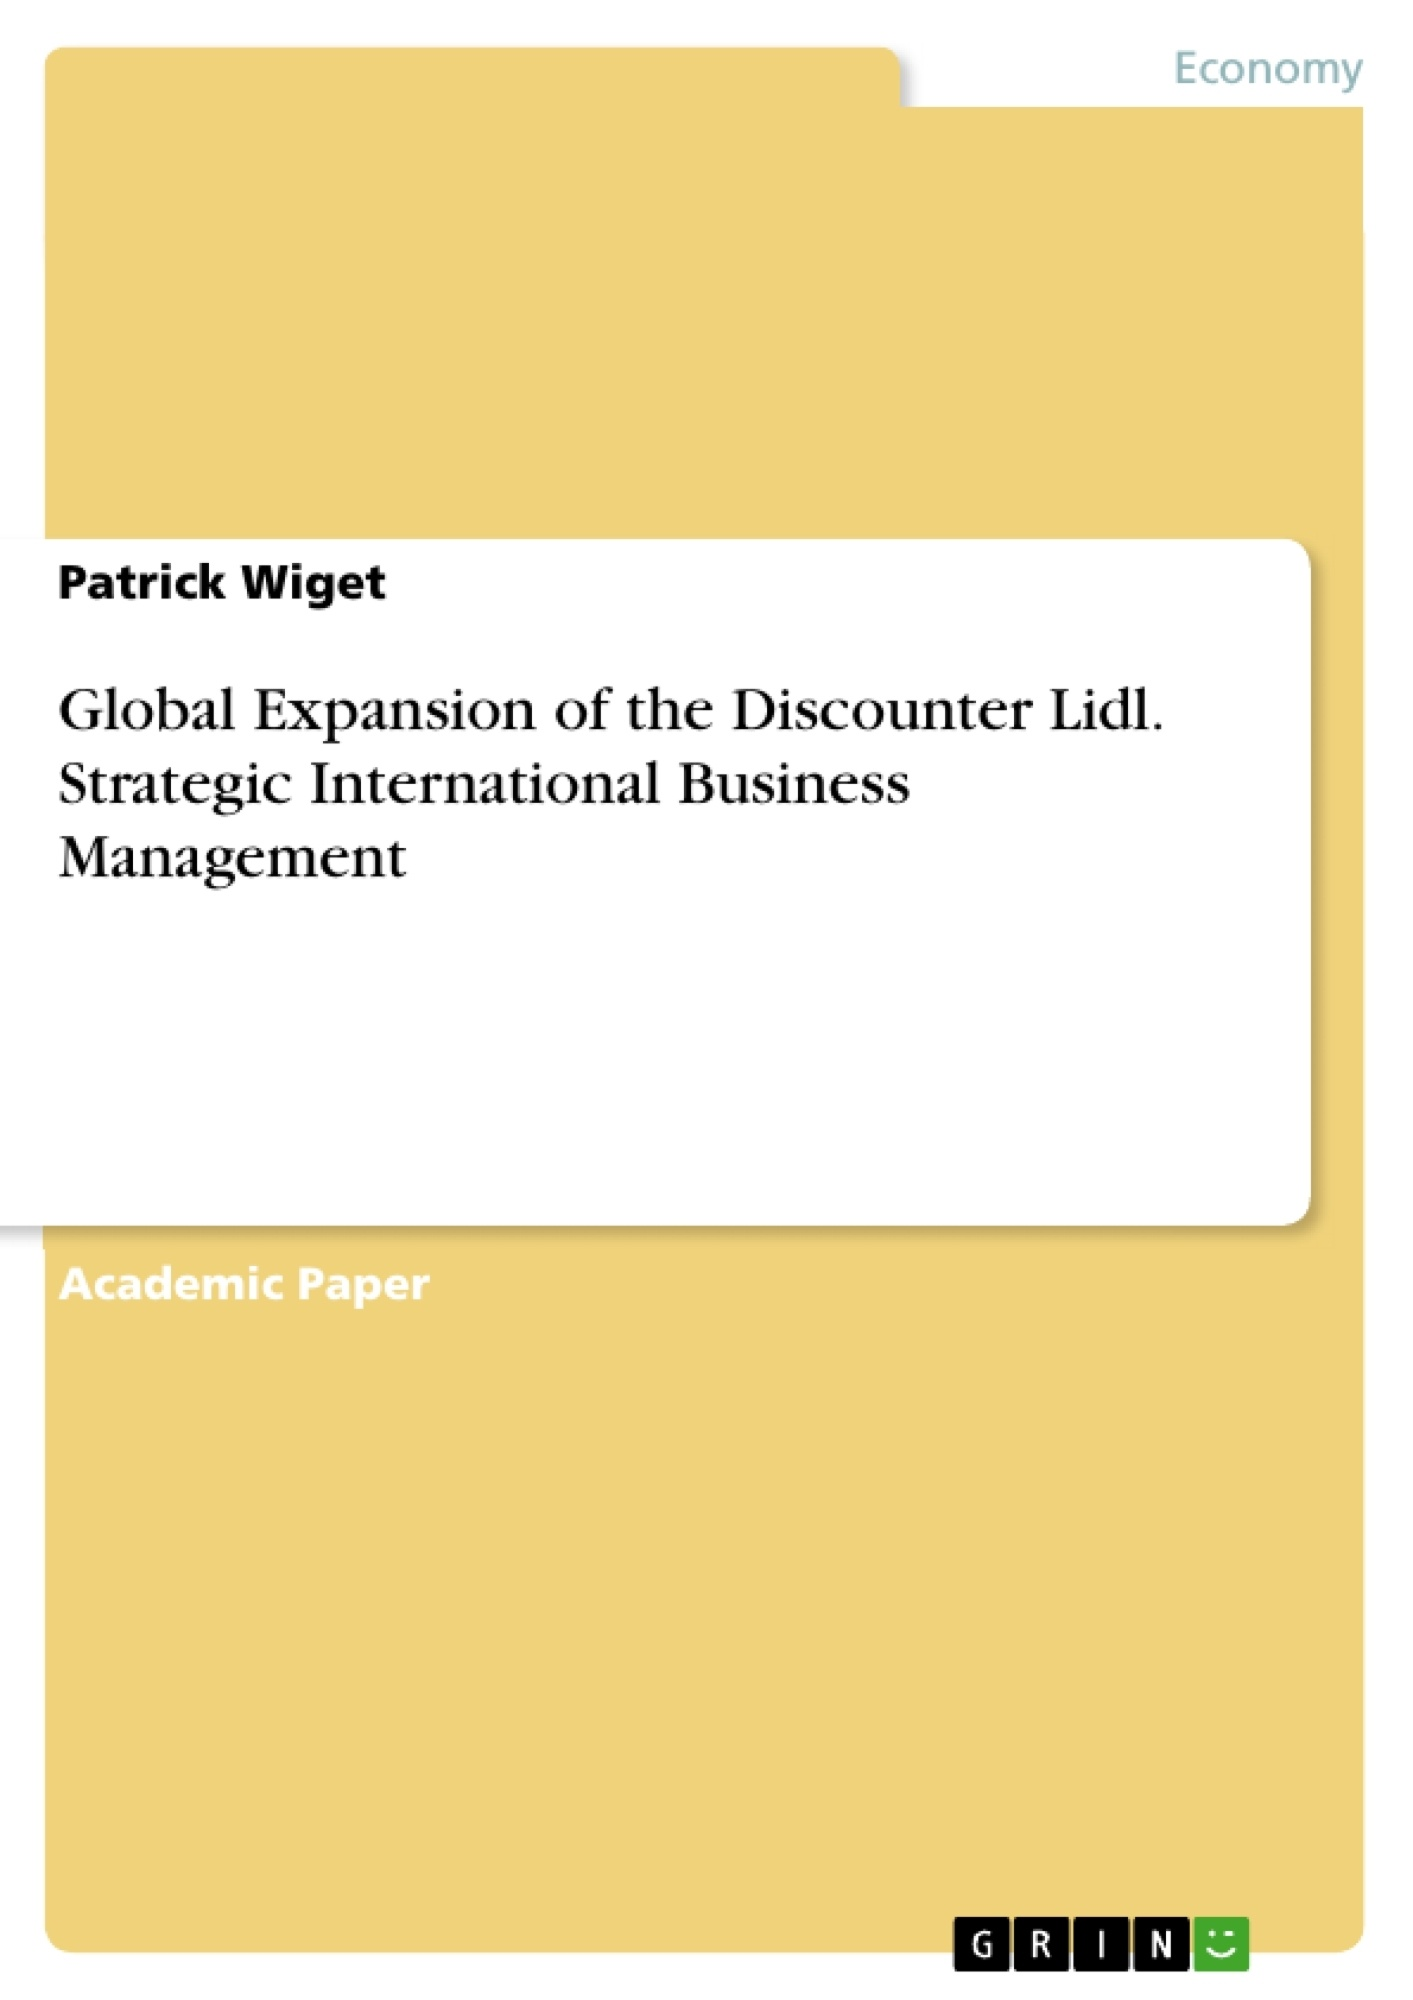 Title: Global Expansion of the Discounter Lidl. Strategic International Business Management